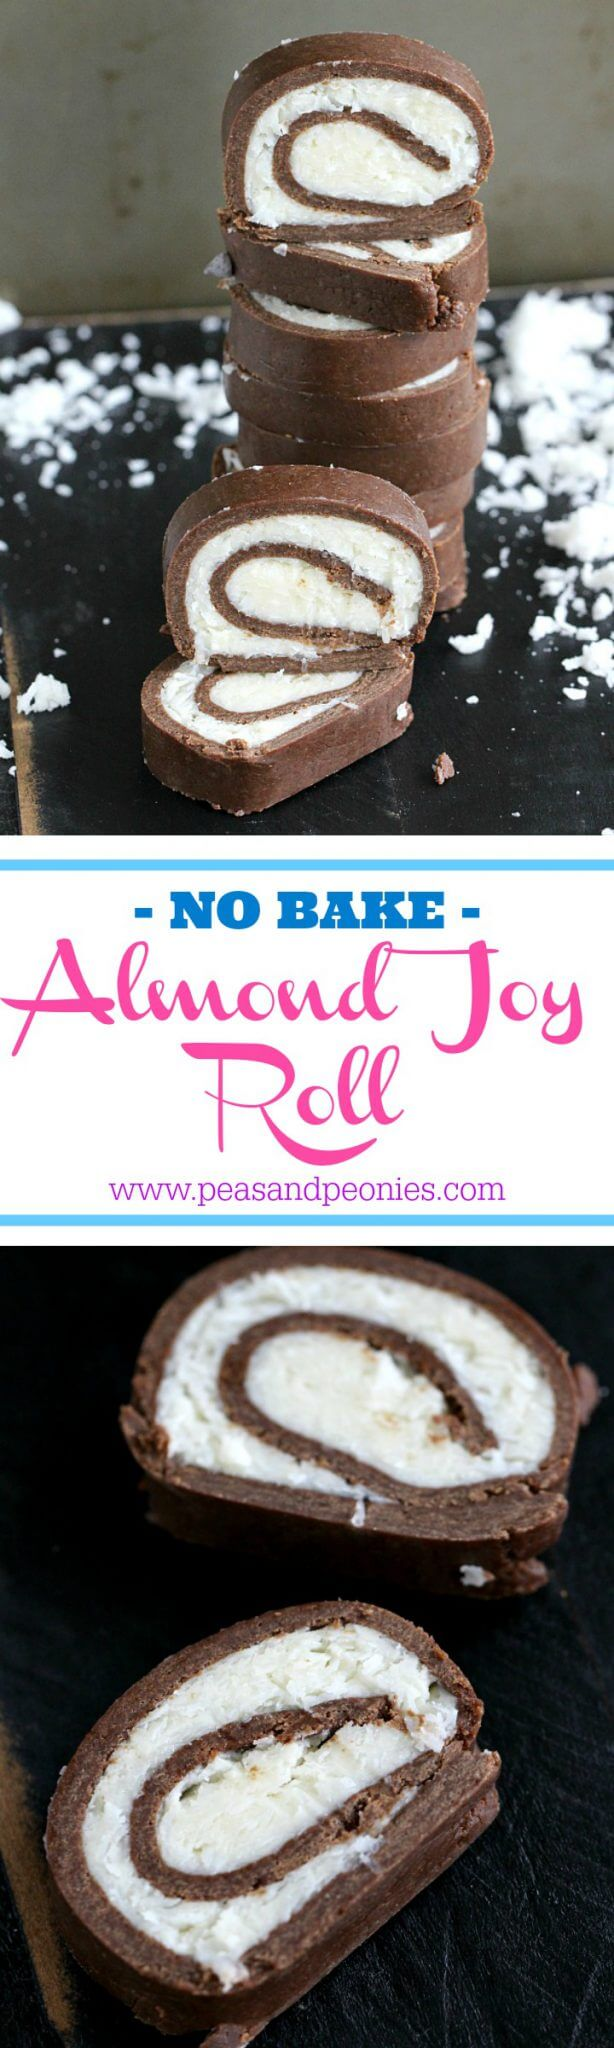 This easy and fun no bake almond joy roll is dense, chocolaty and has a creamy, sweet and smooth coconut filling. A perfect kitchen project for kids and adults.